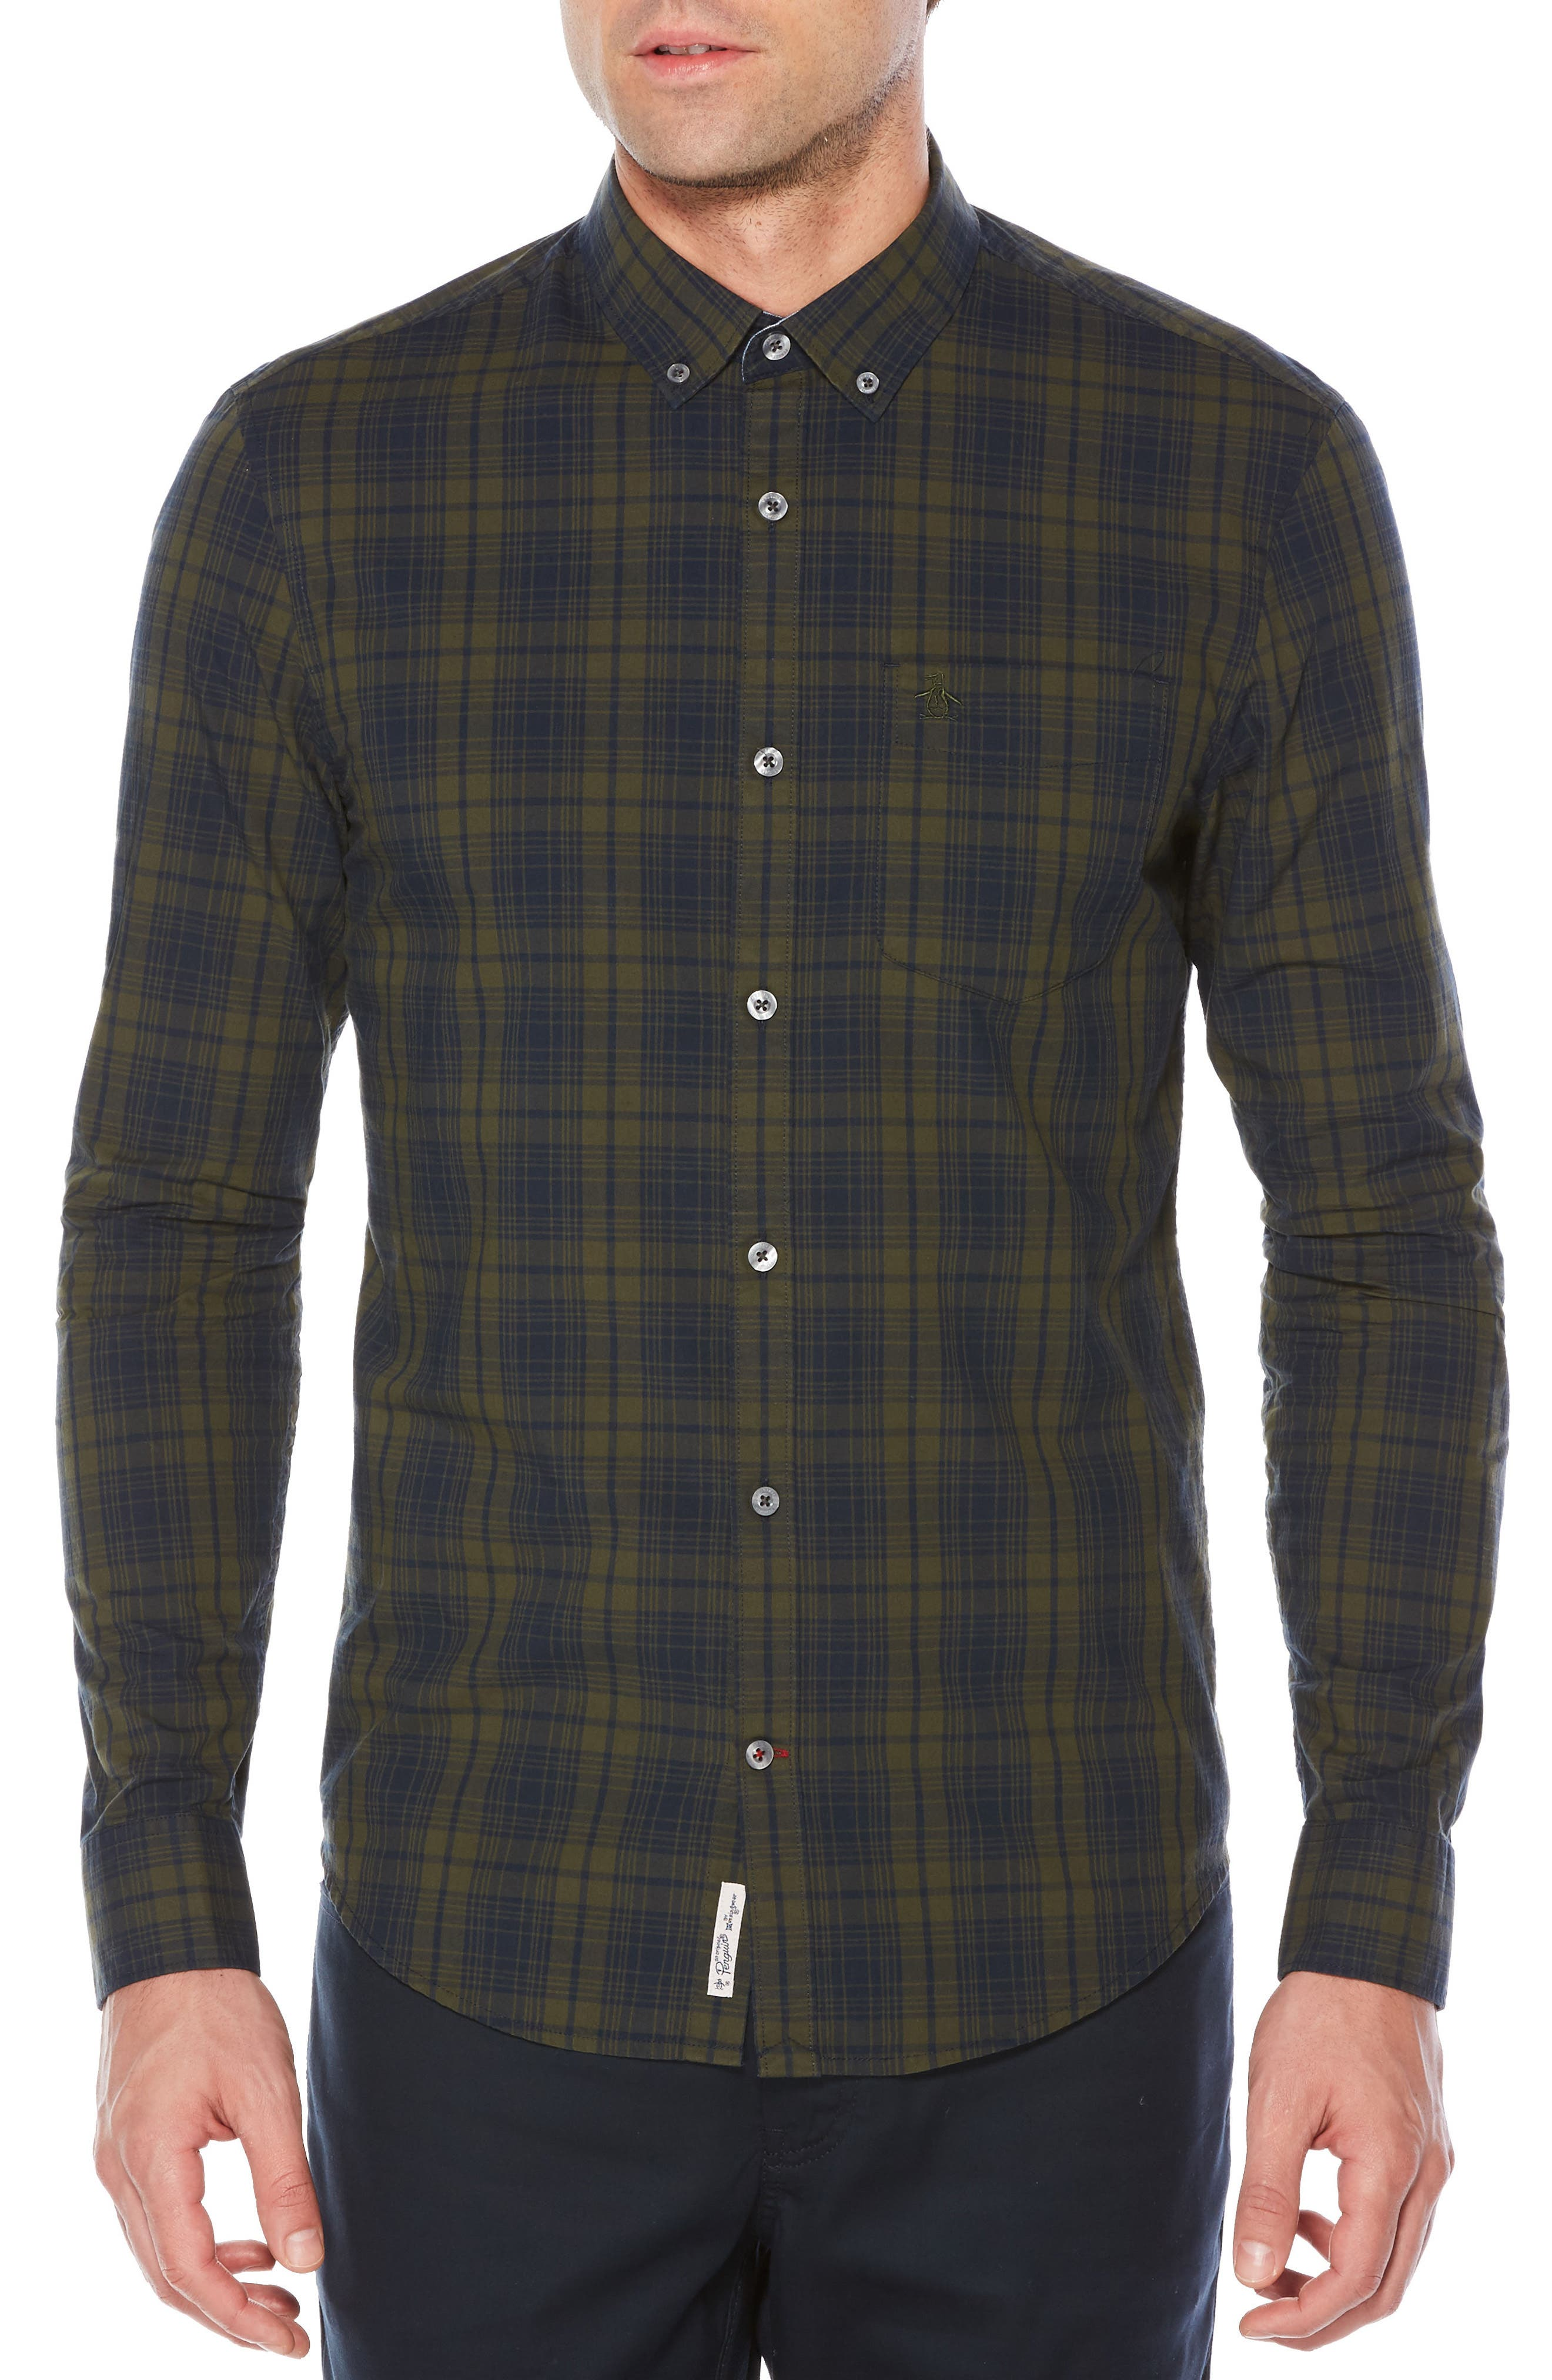 Heritage Slim Fit Plaid Shirt,                         Main,                         color, Forest Night